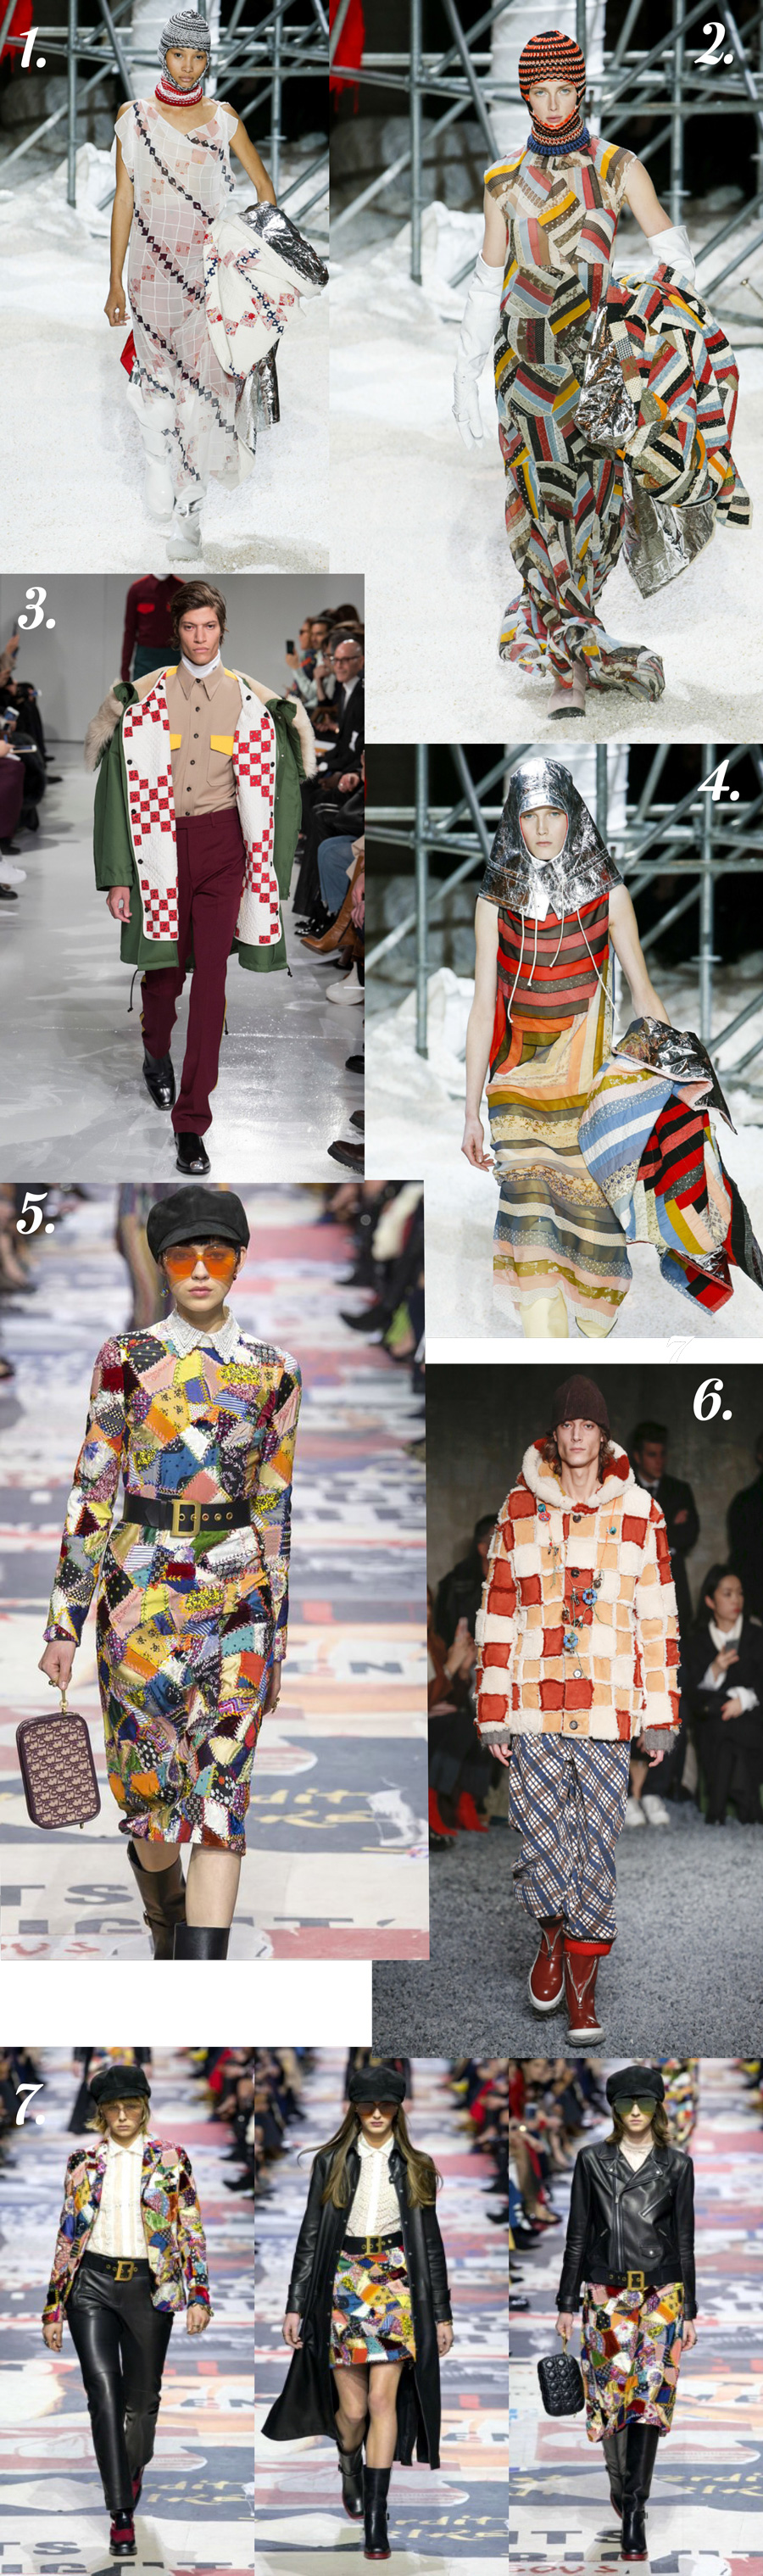 Runway roundup of quilts and patchwork inspiration from FW18 for your next sewing project idea!